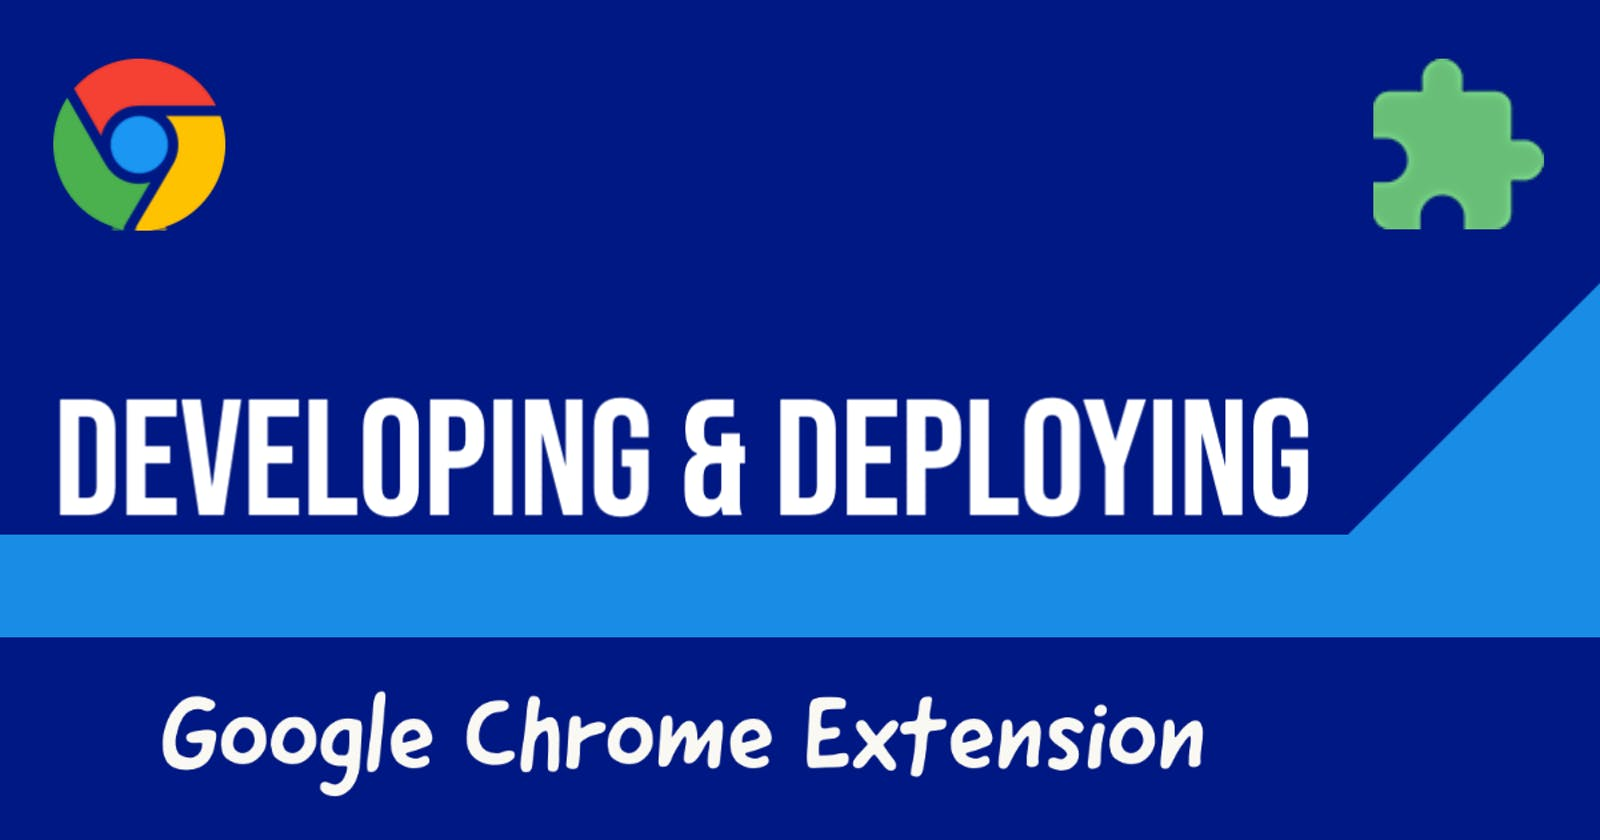 Developing & Deploying a Google Chrome Extension